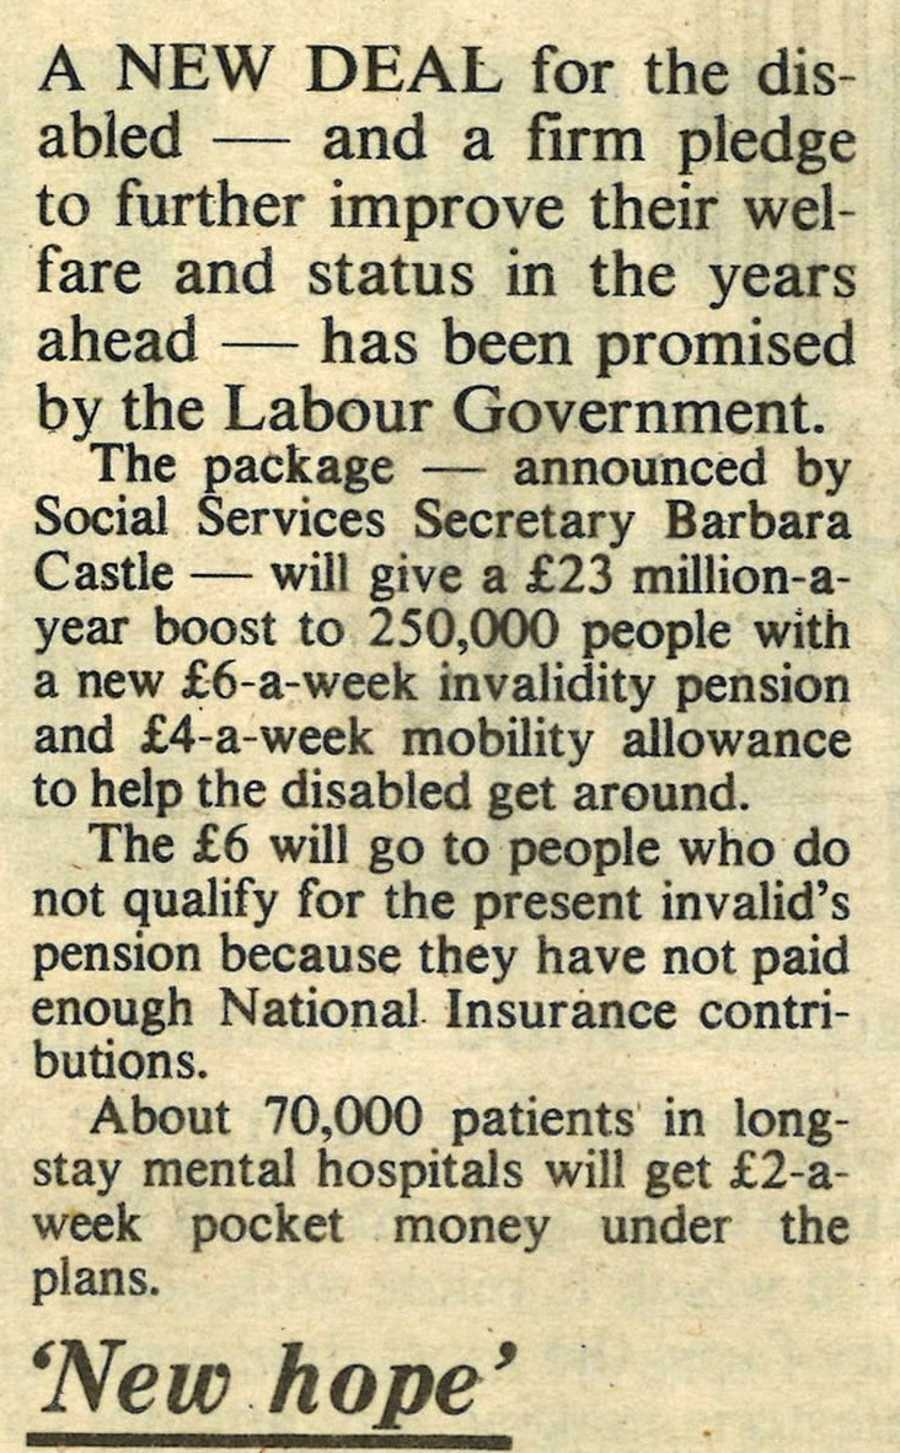 An extract from Labour Weekly, 20 September 1974